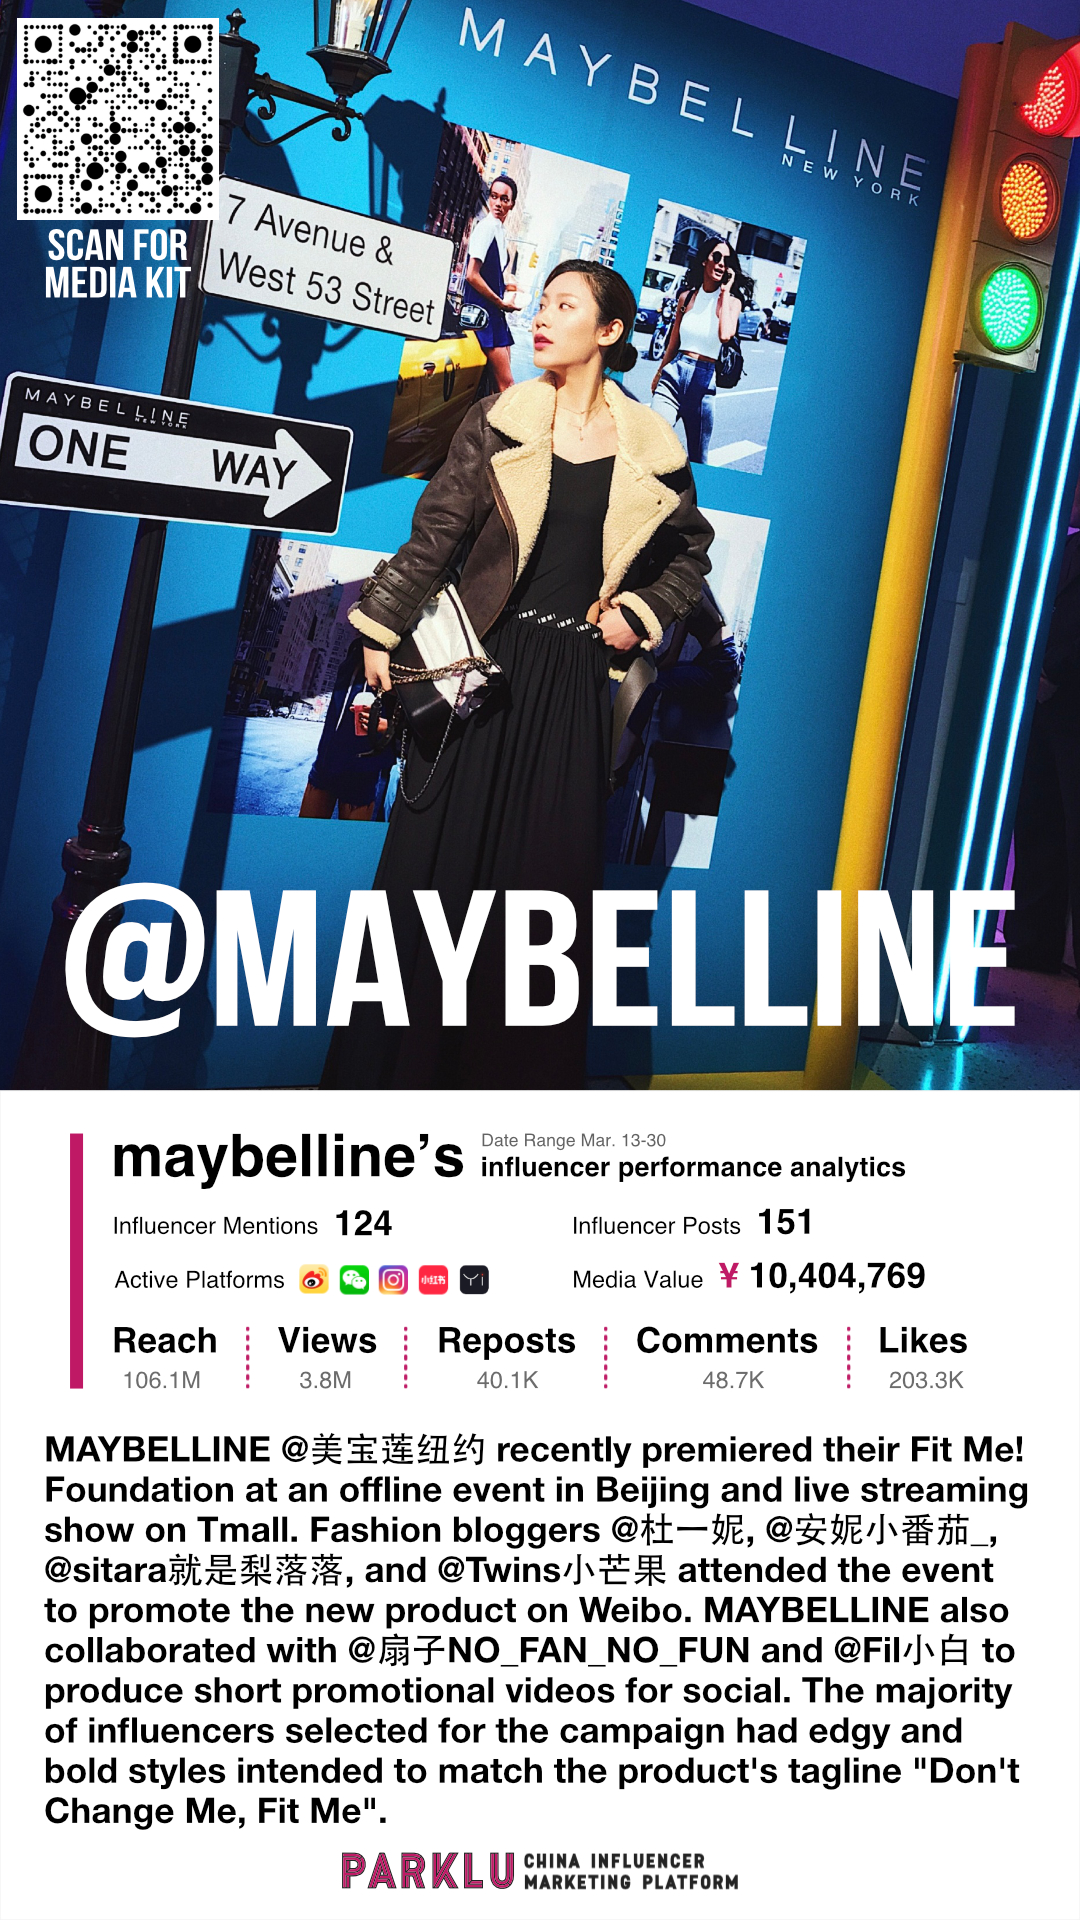 Maybelline Premiers Fit Me! Foundation with Fashion Bloggers